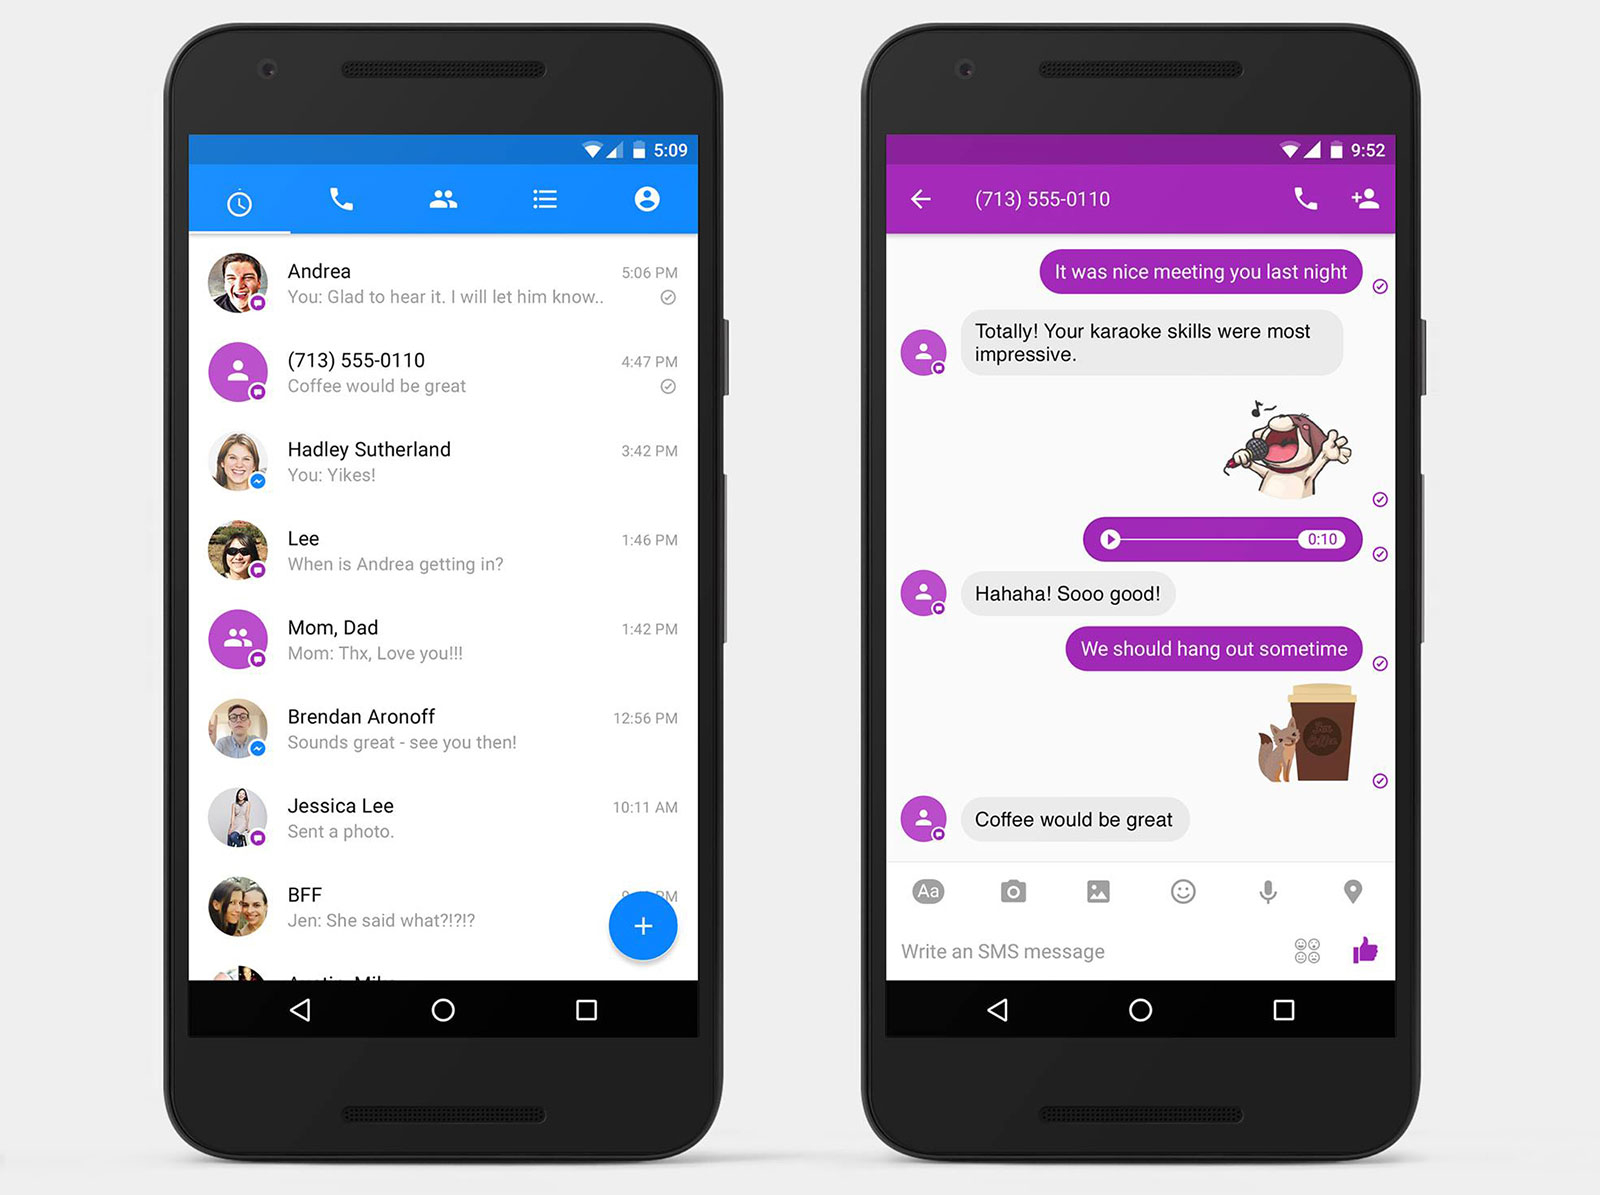 Android 版 Facebook Messenger 也能发 SMS 啊